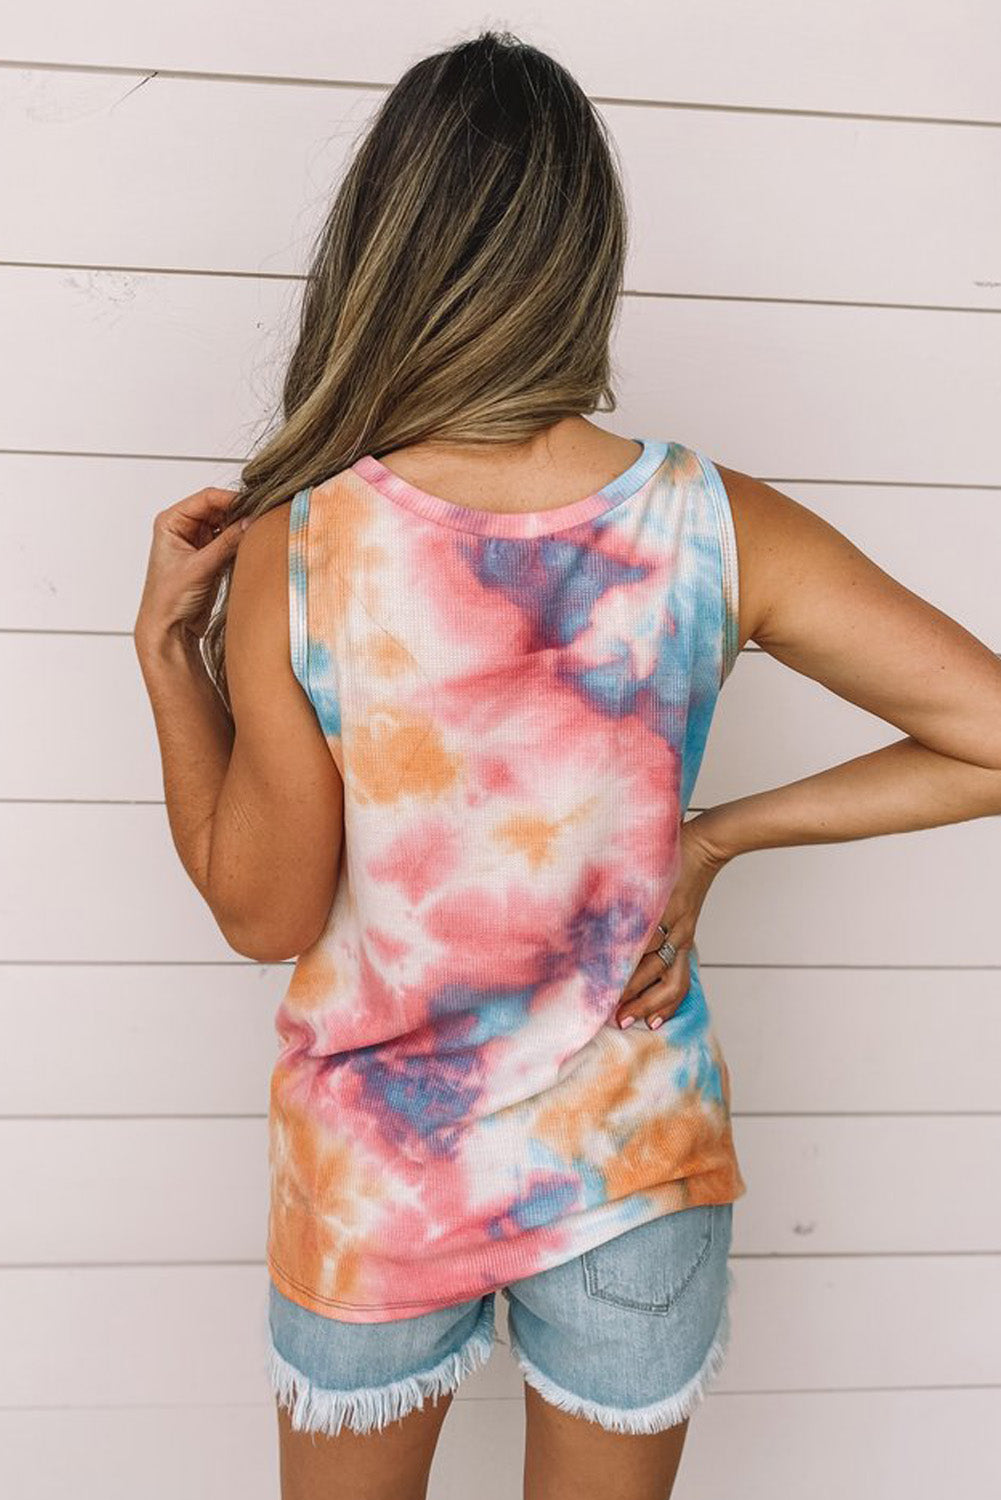 Multi Color Tie Dye Twist Detail Tank Top     Small to 2 XL